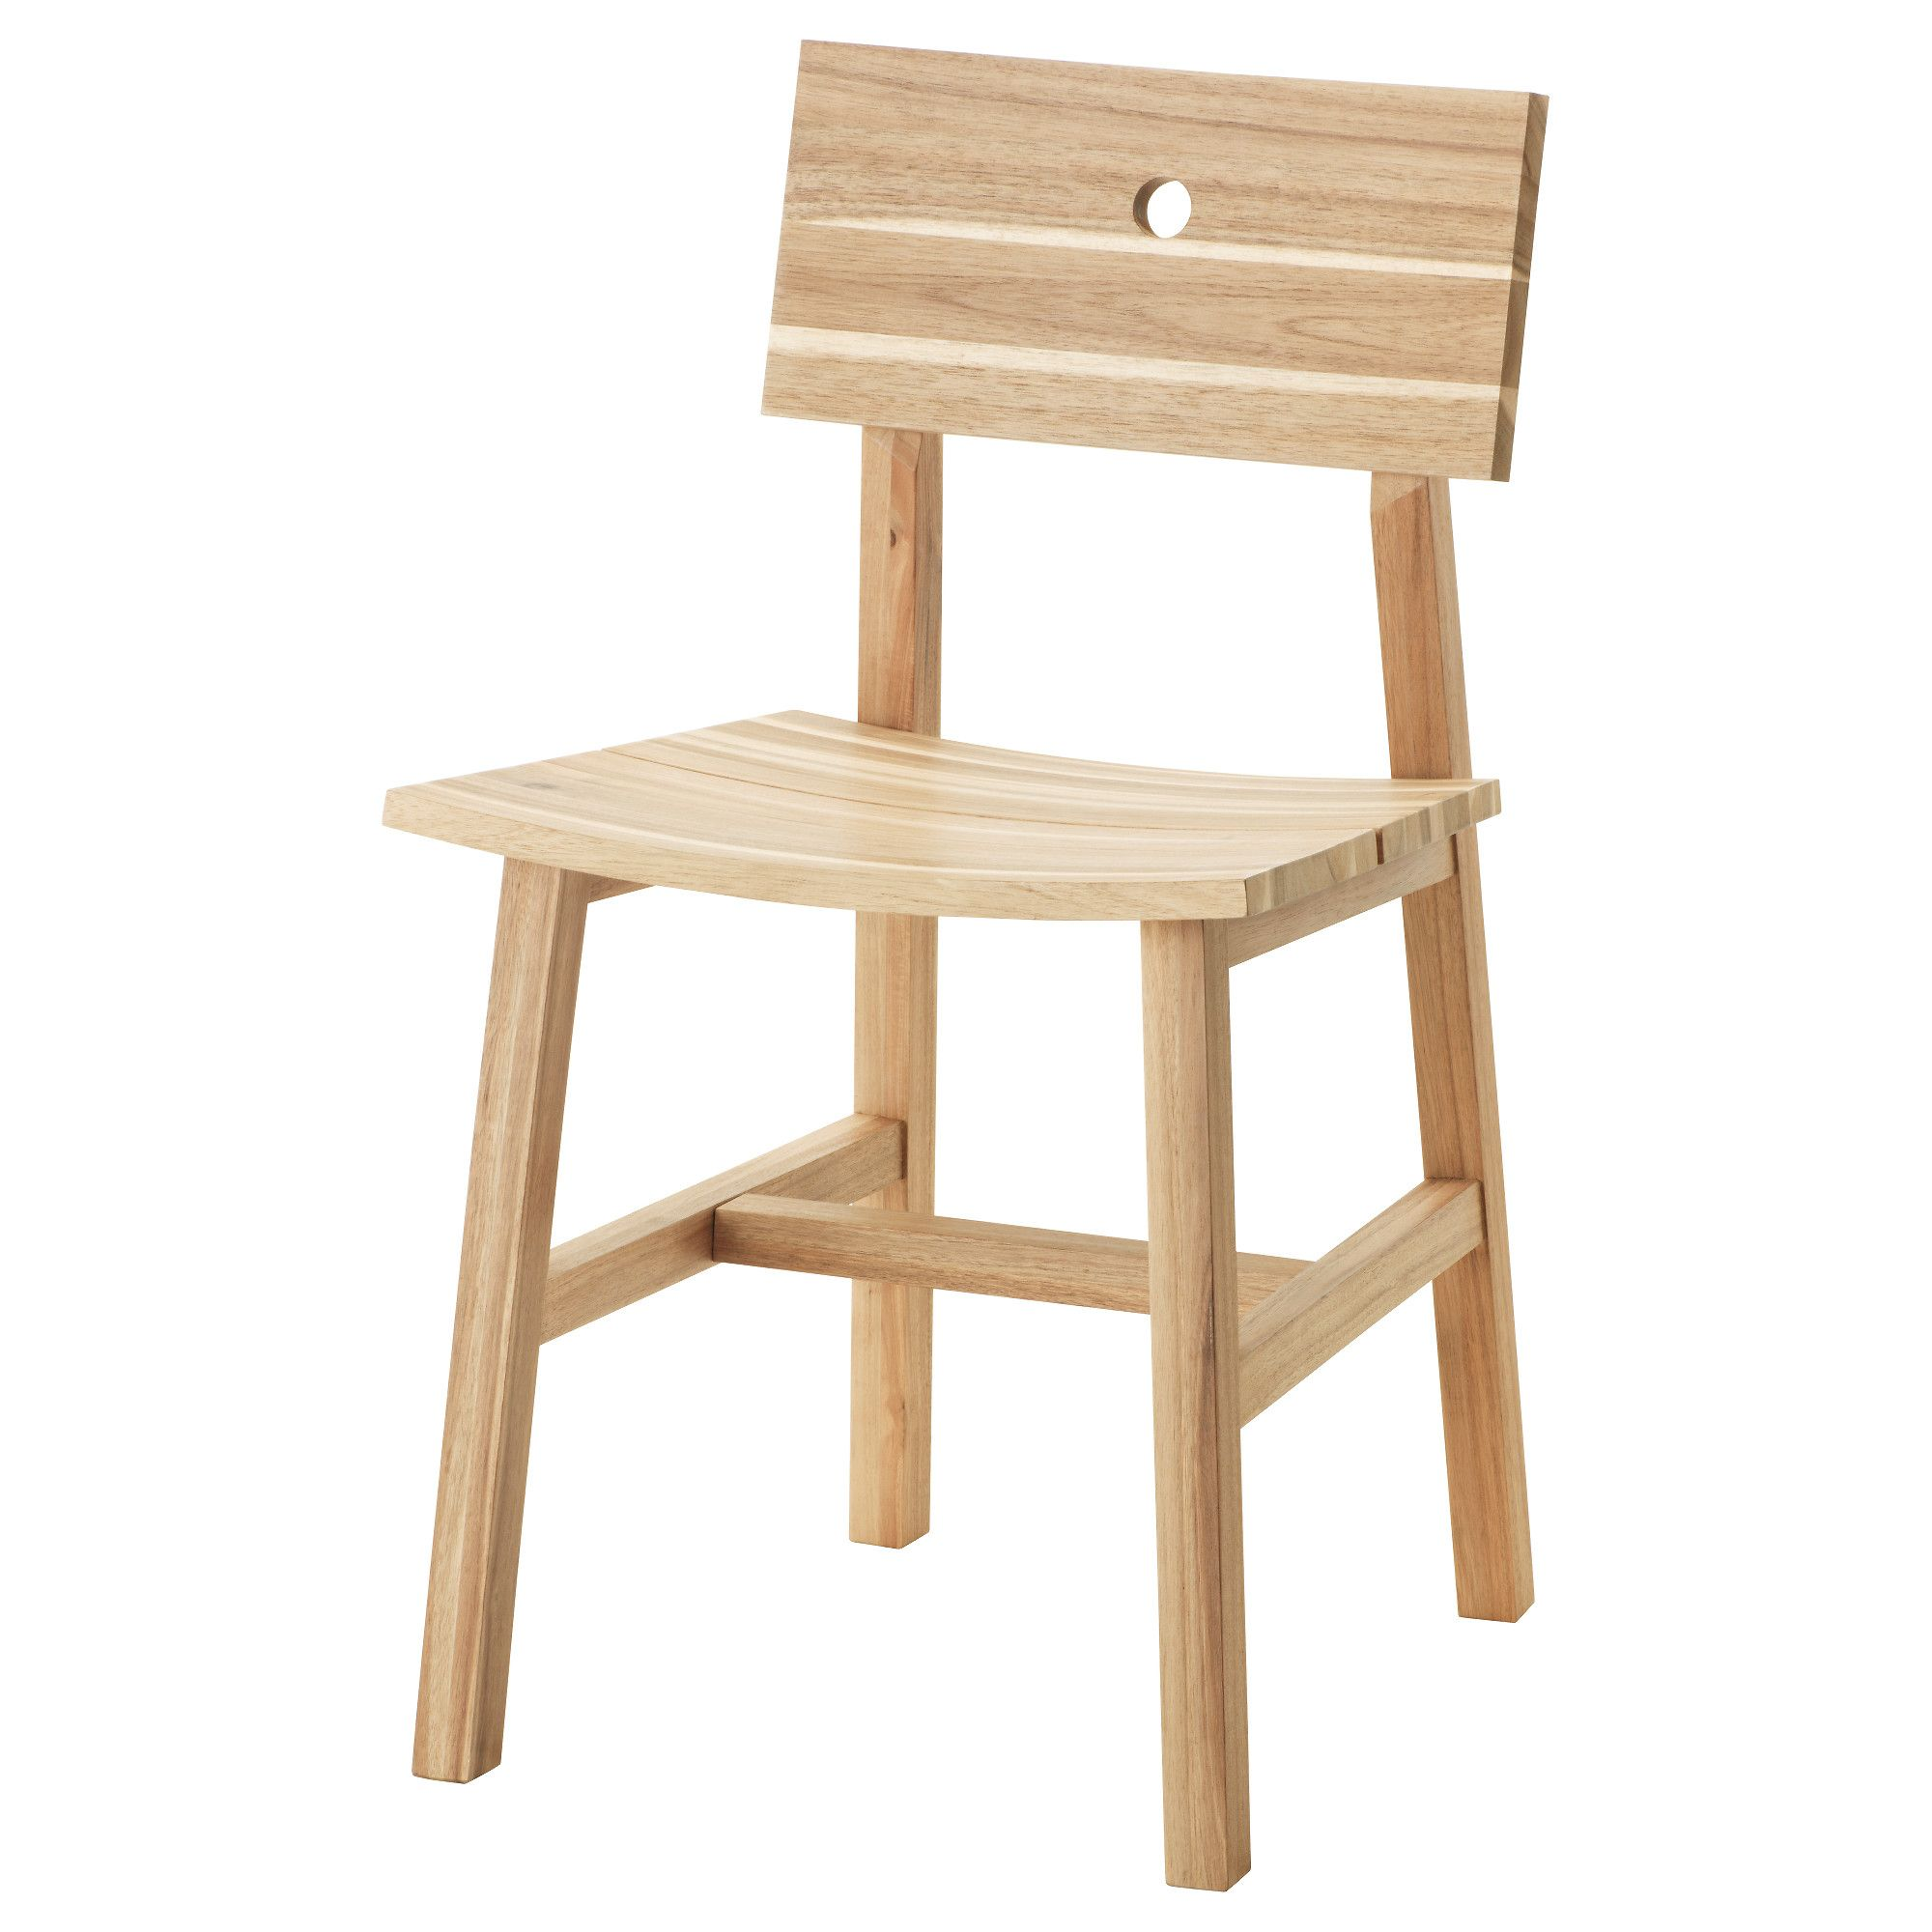 Kitchen Chairs Wood Skogsta Chair Acacia Furniture Ikea Dining Chair Kitchen